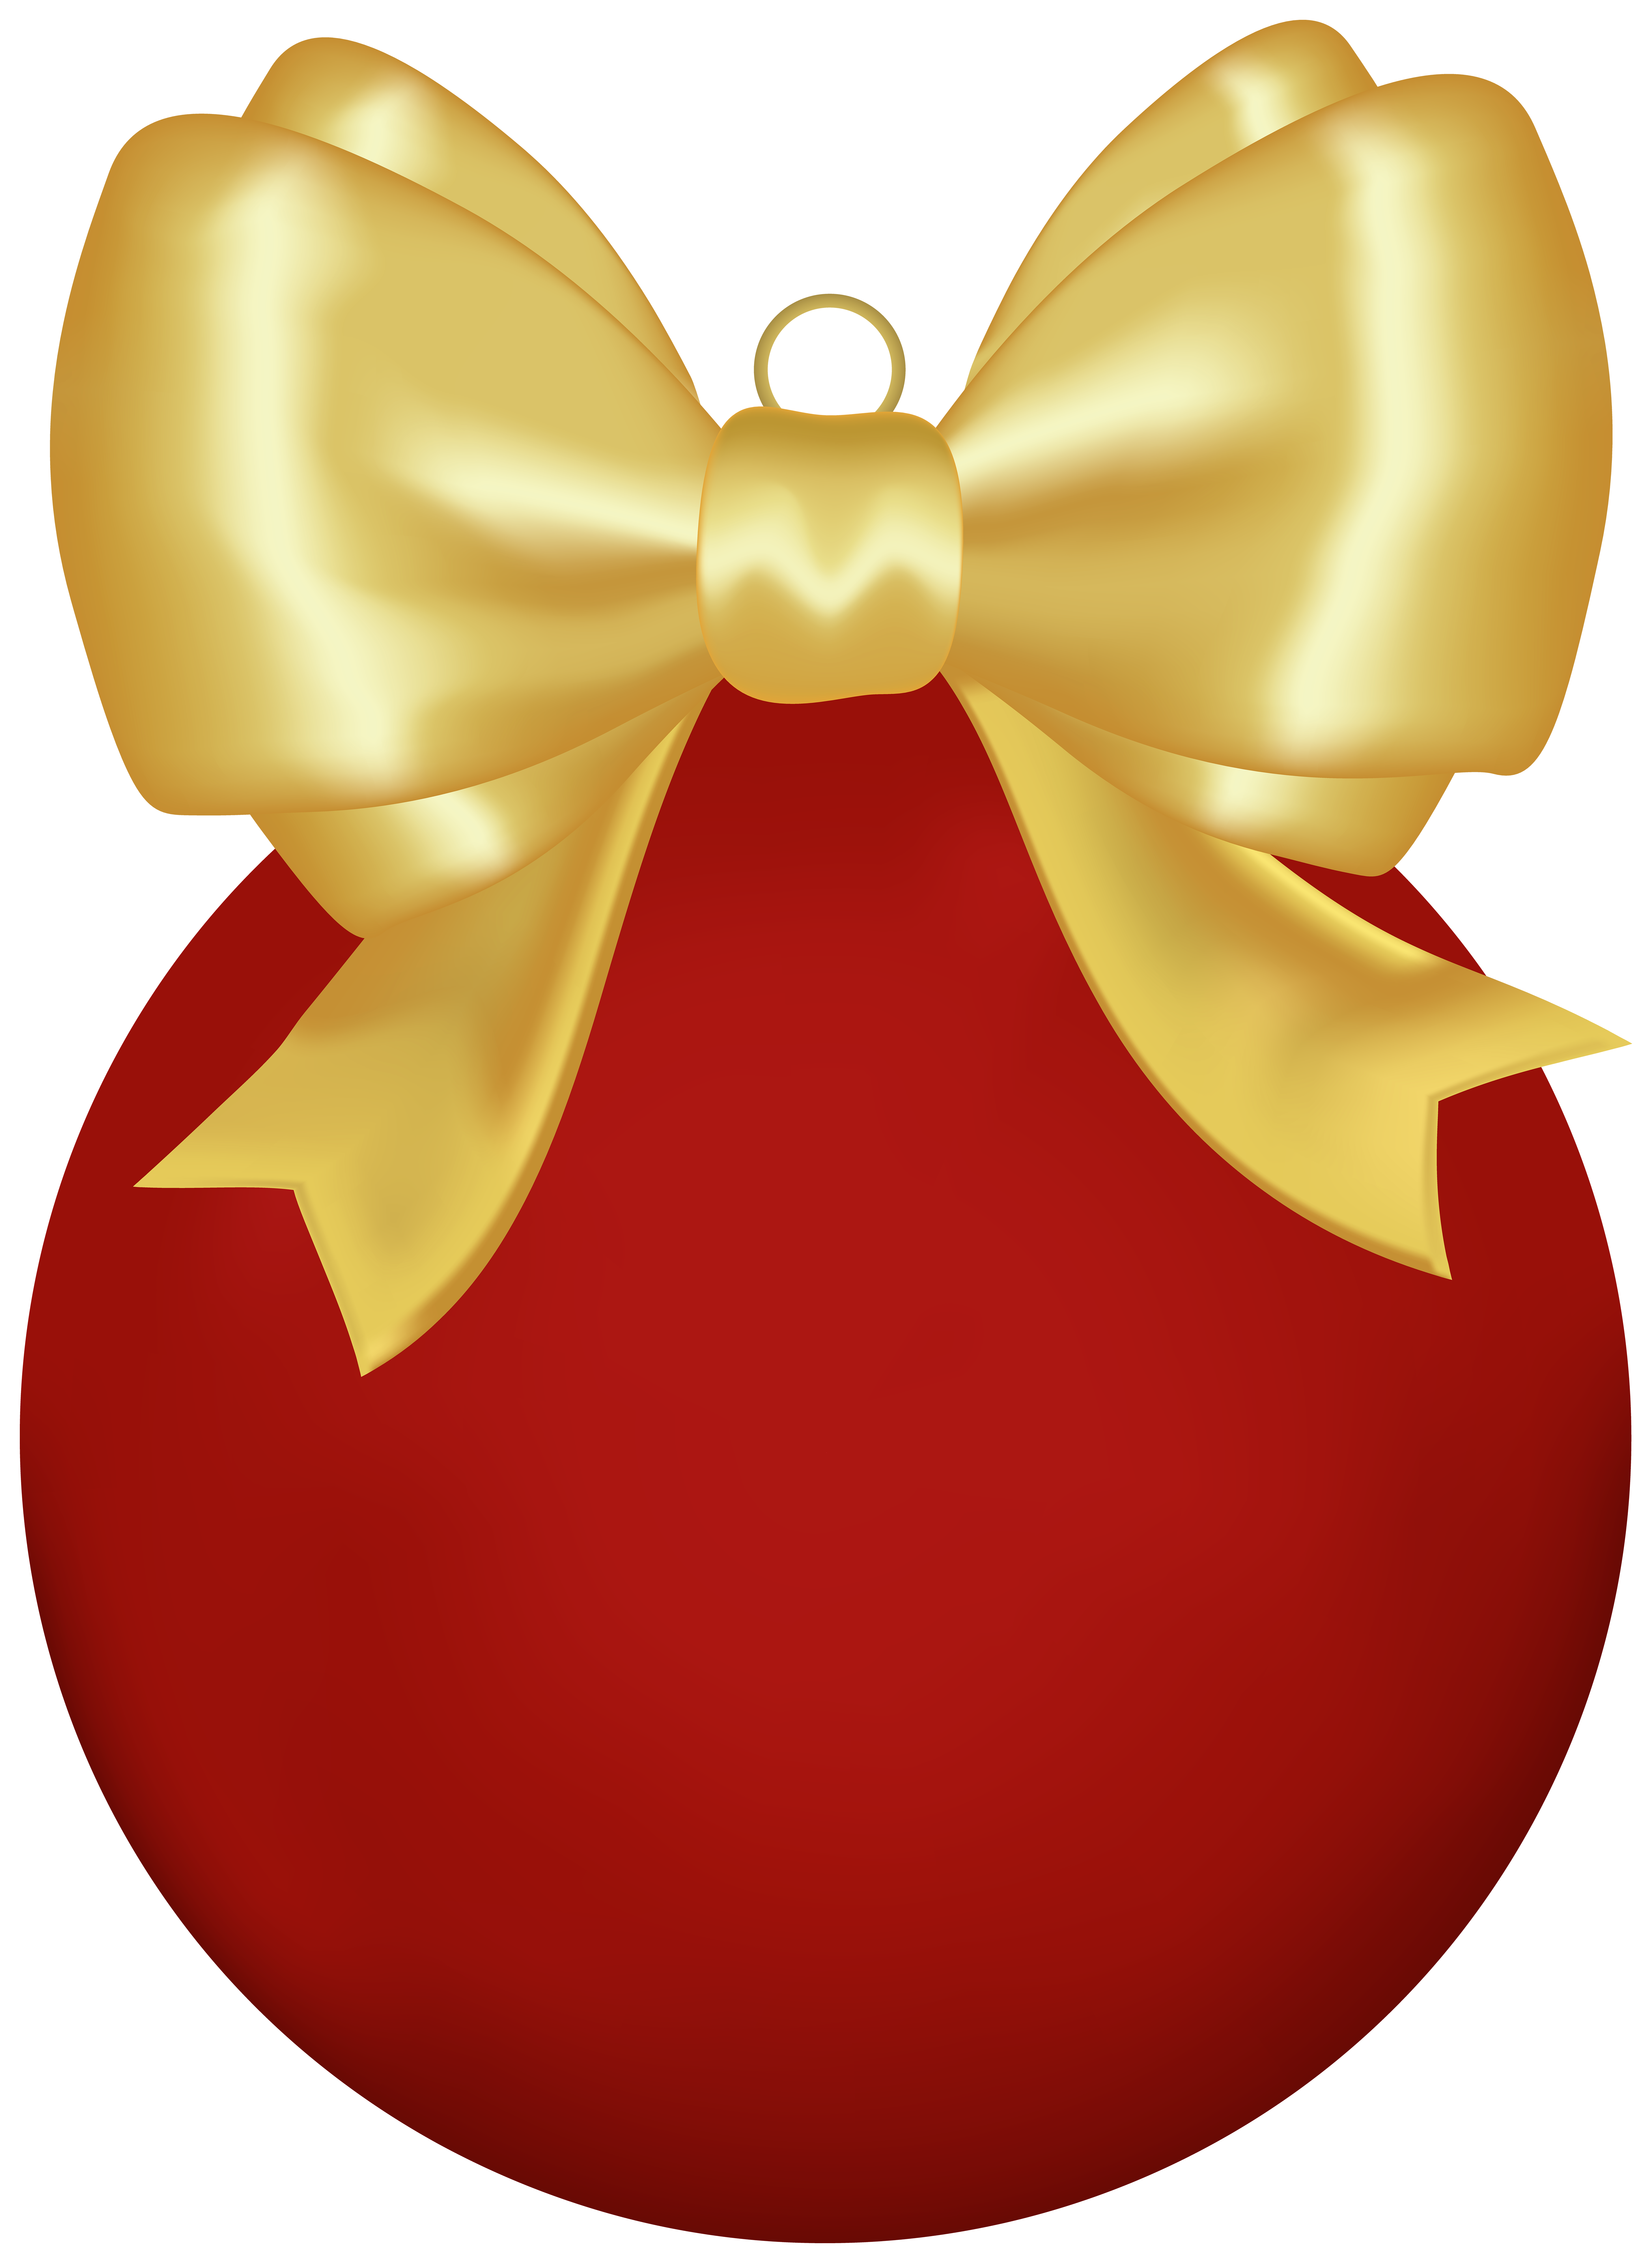 Christmas Red Ball with Bow PNG Clipart.